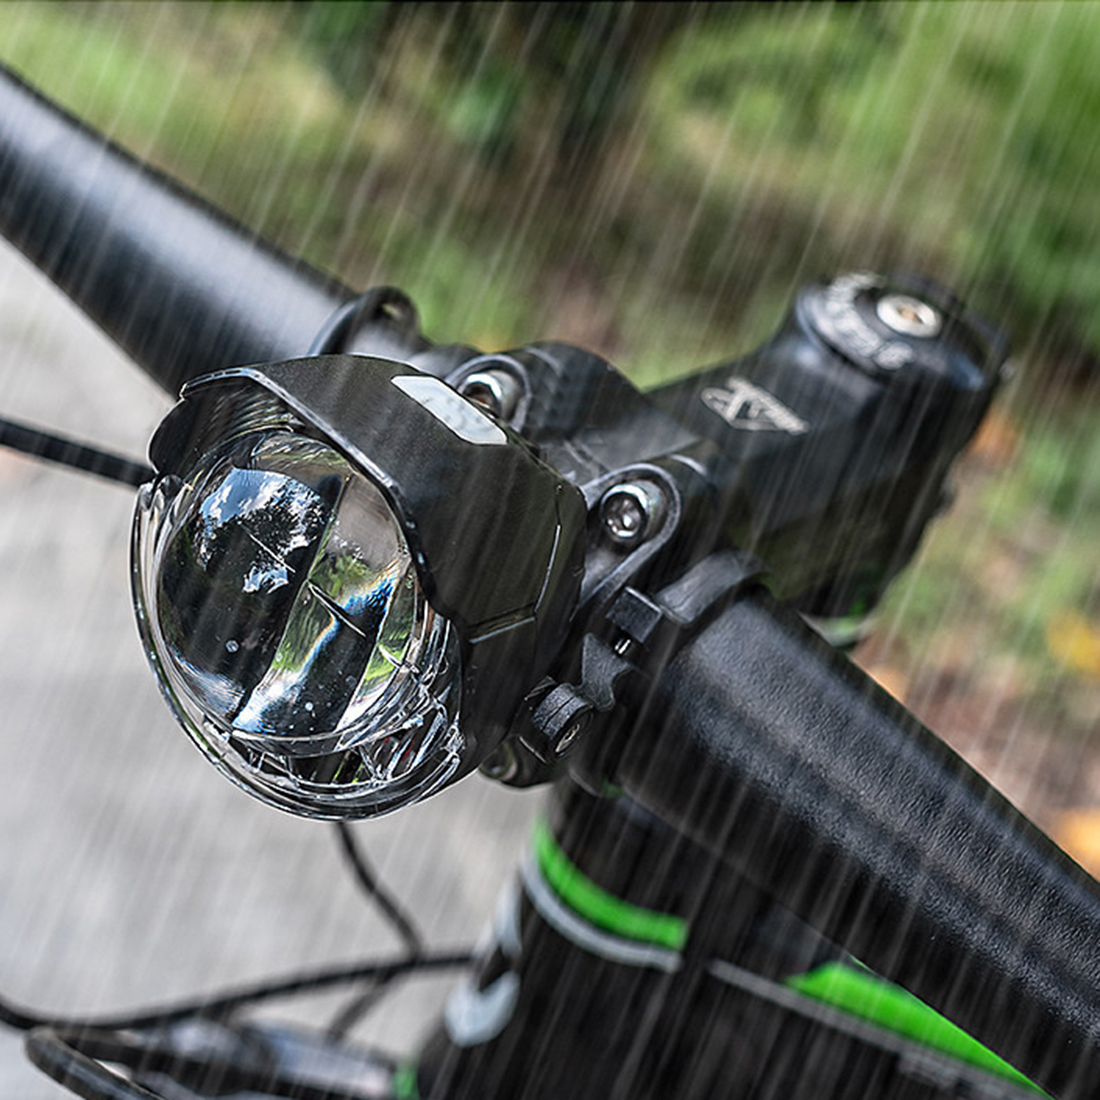 Leadbike LD28 USB Rechargeable Bike Light T6 LED Bicycle Headlight 750LMs IP4 Waterproof 3 Modes Front Light Hot Sale